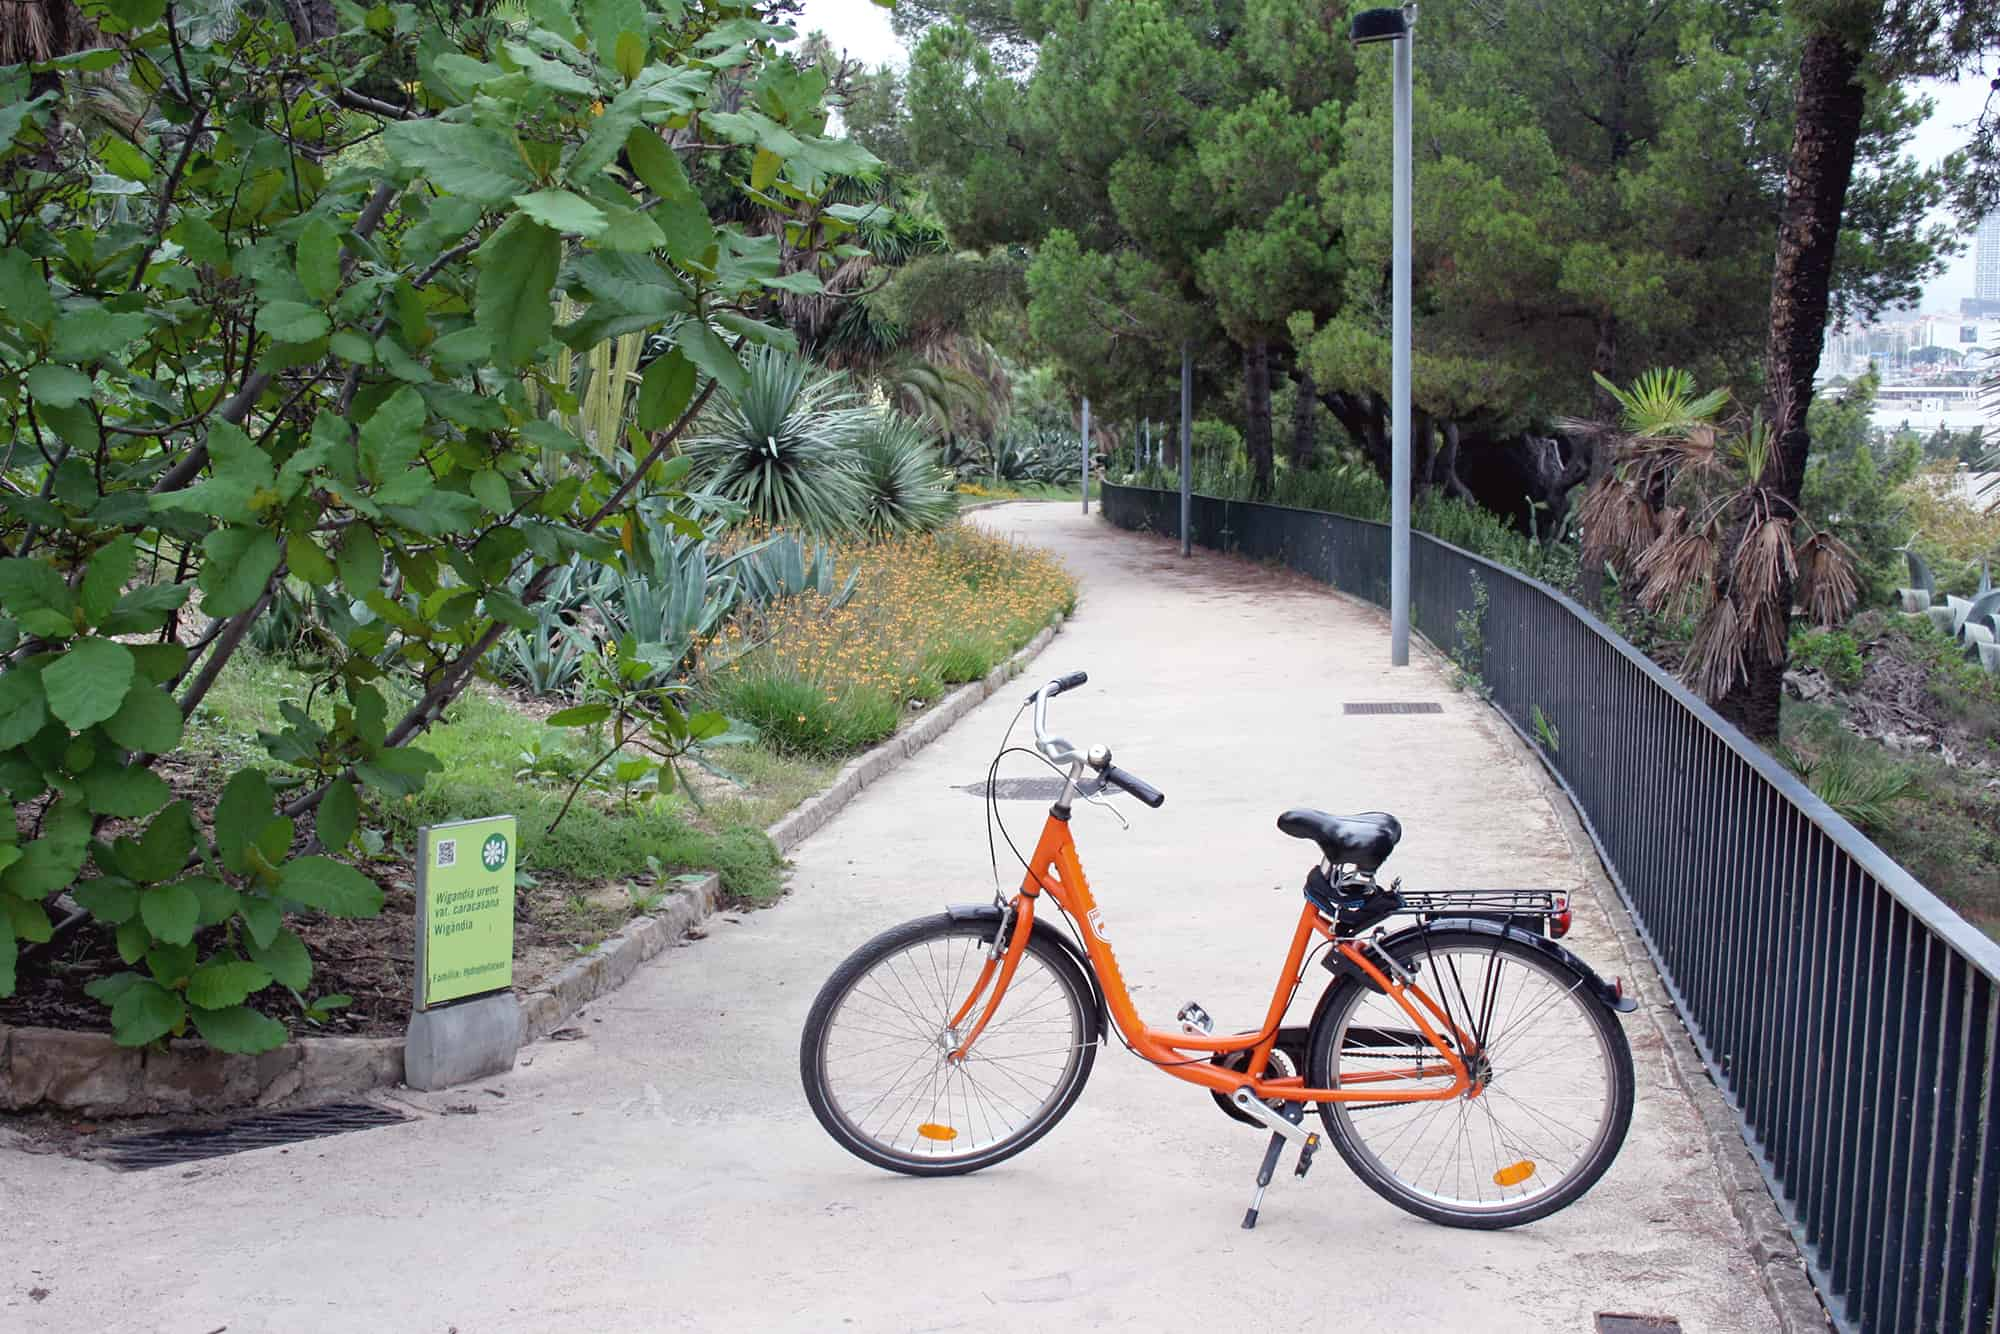 Bike tour in Barcelona, at Jardins de Joan Brossa